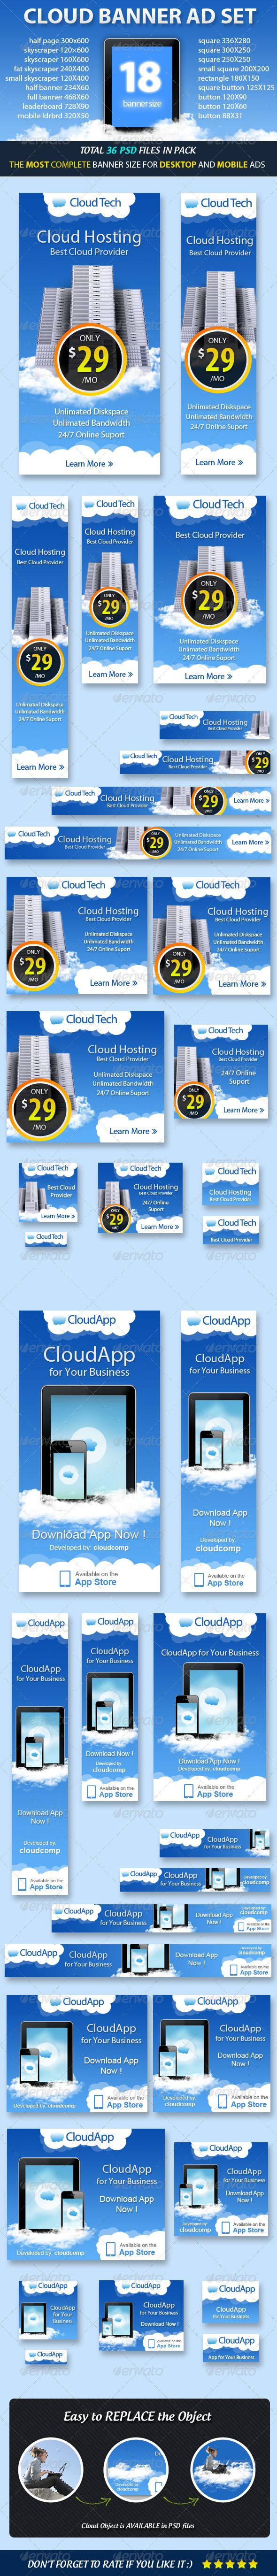 Cloud Web Banner ad Set Template PSD | Buy and Download: http://graphicriver.net/item/cloud-banner-ad-set/5250447?WT.ac=category_thumb&WT.z_author=booharry&ref=ksioks